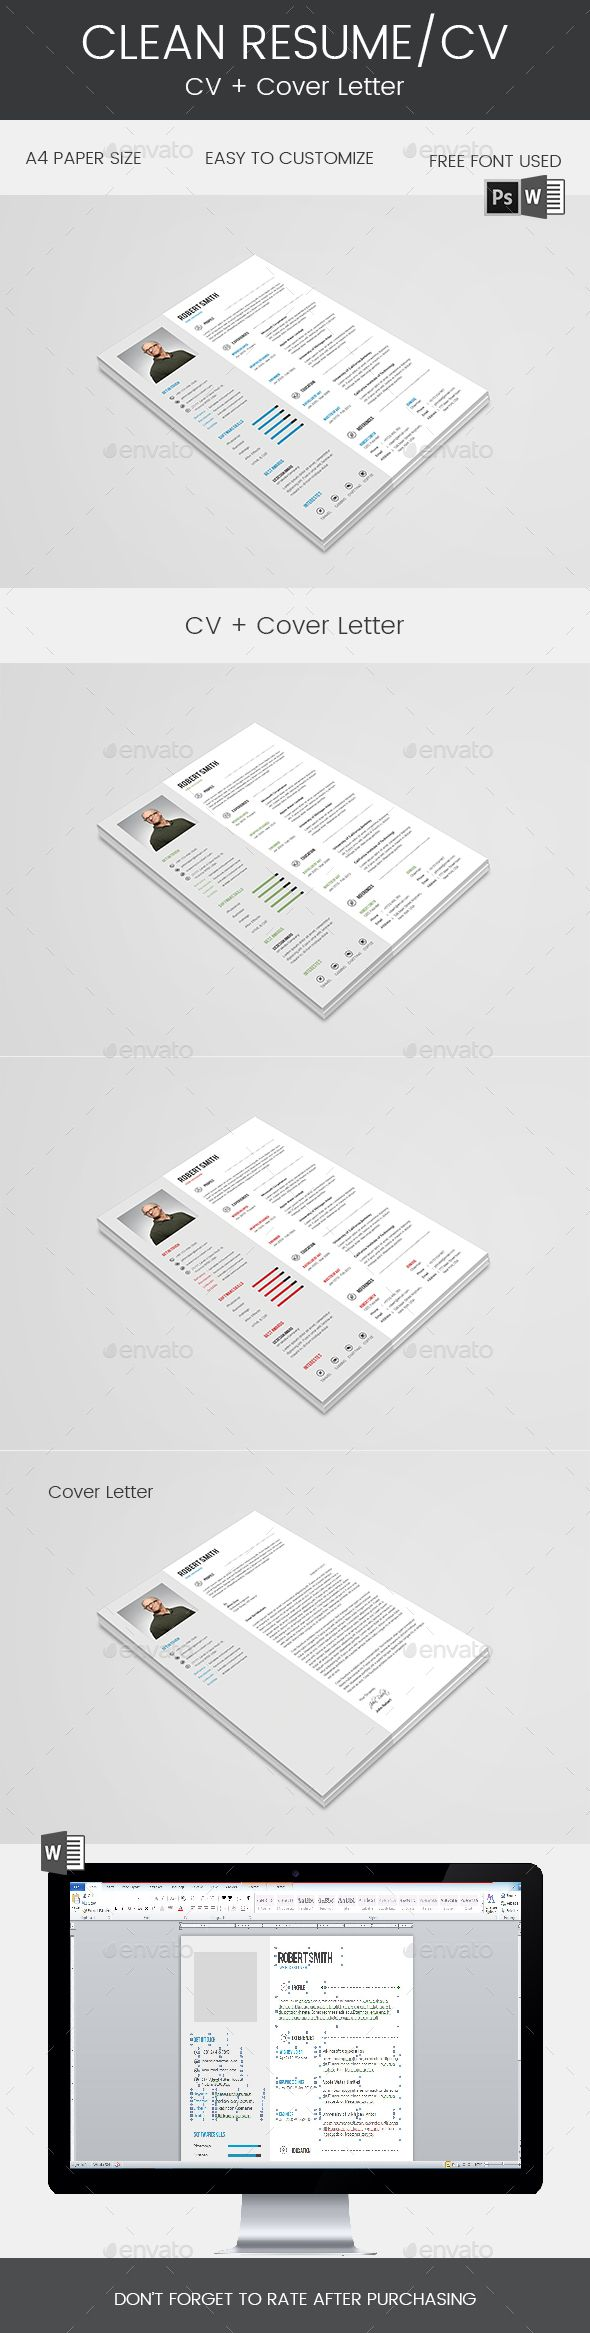 """Clean Resume & Cover Letter by Mohsin_kabir Description: """"Hello and Thank You for purchasing my file. If you need any help using it pleasefeel free to contact me via my Graph"""